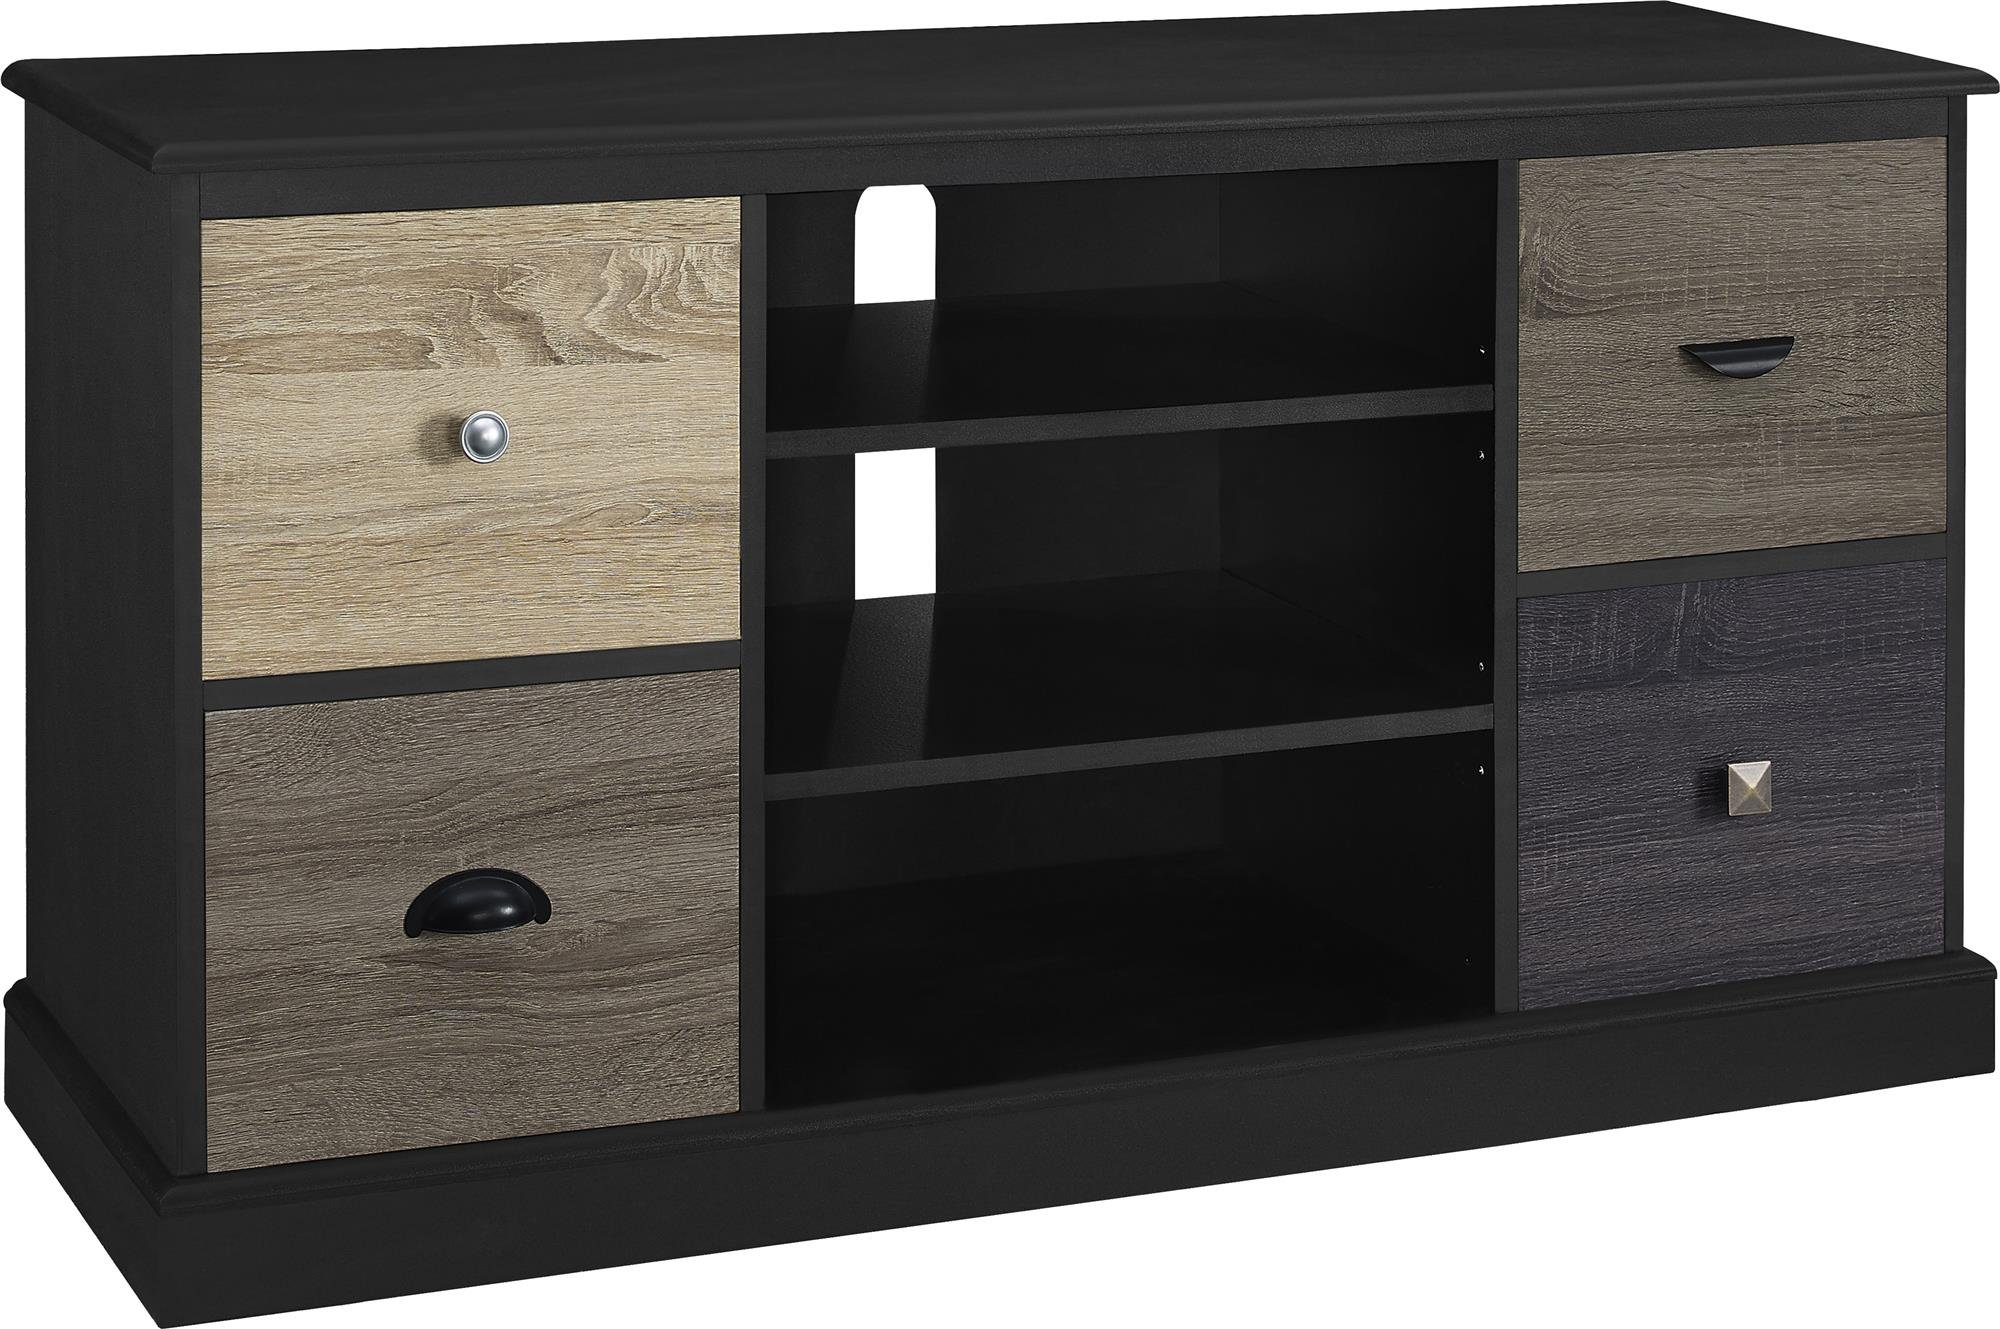 Ameriwood Home Blackburn 50'' TV Console with Multicolored Door Fronts (Black)